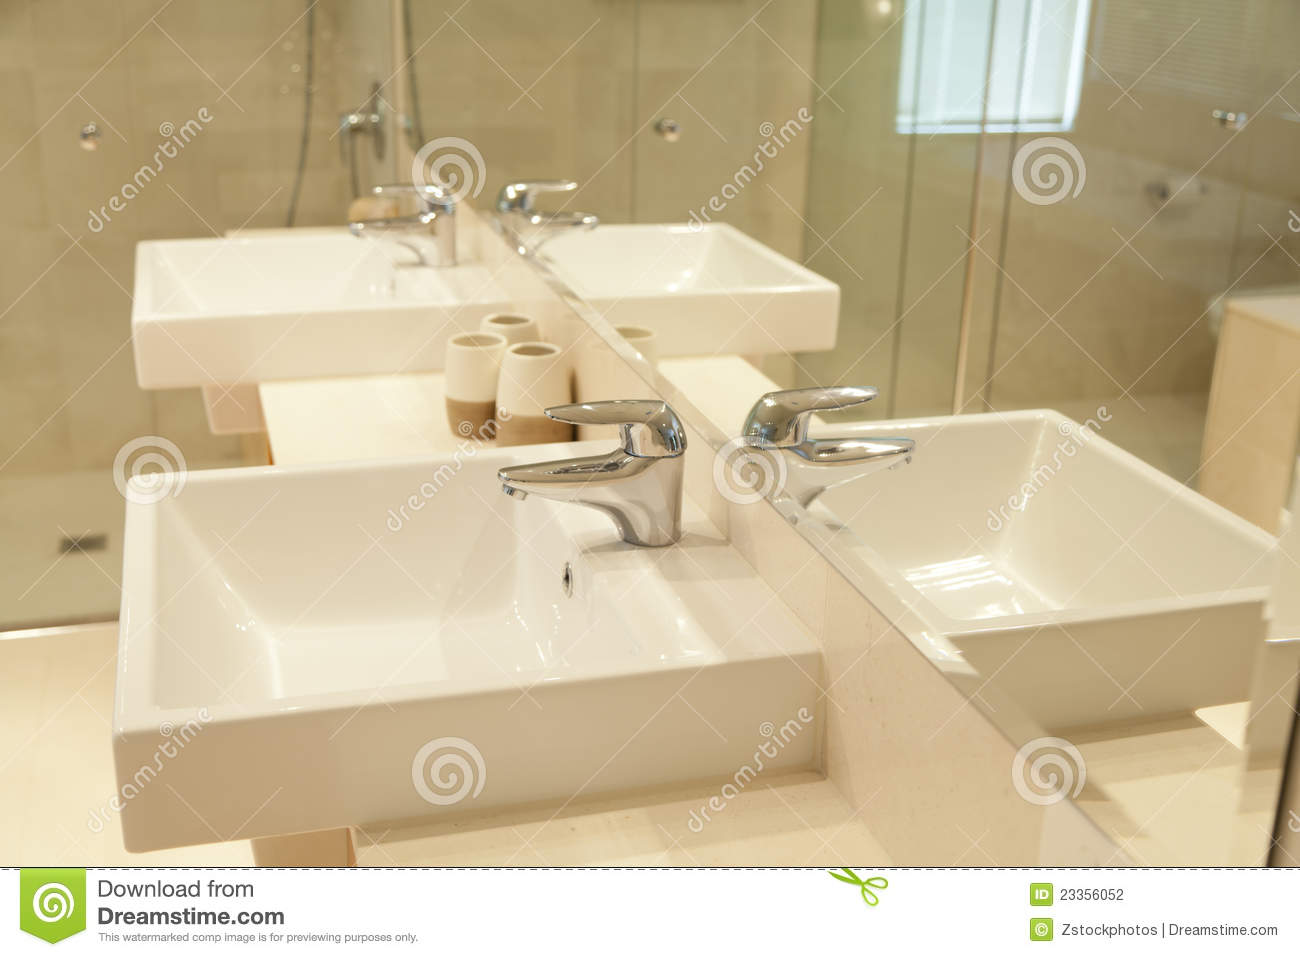 Twin Bathroom Sinks Stock Photography - Image: 23356052